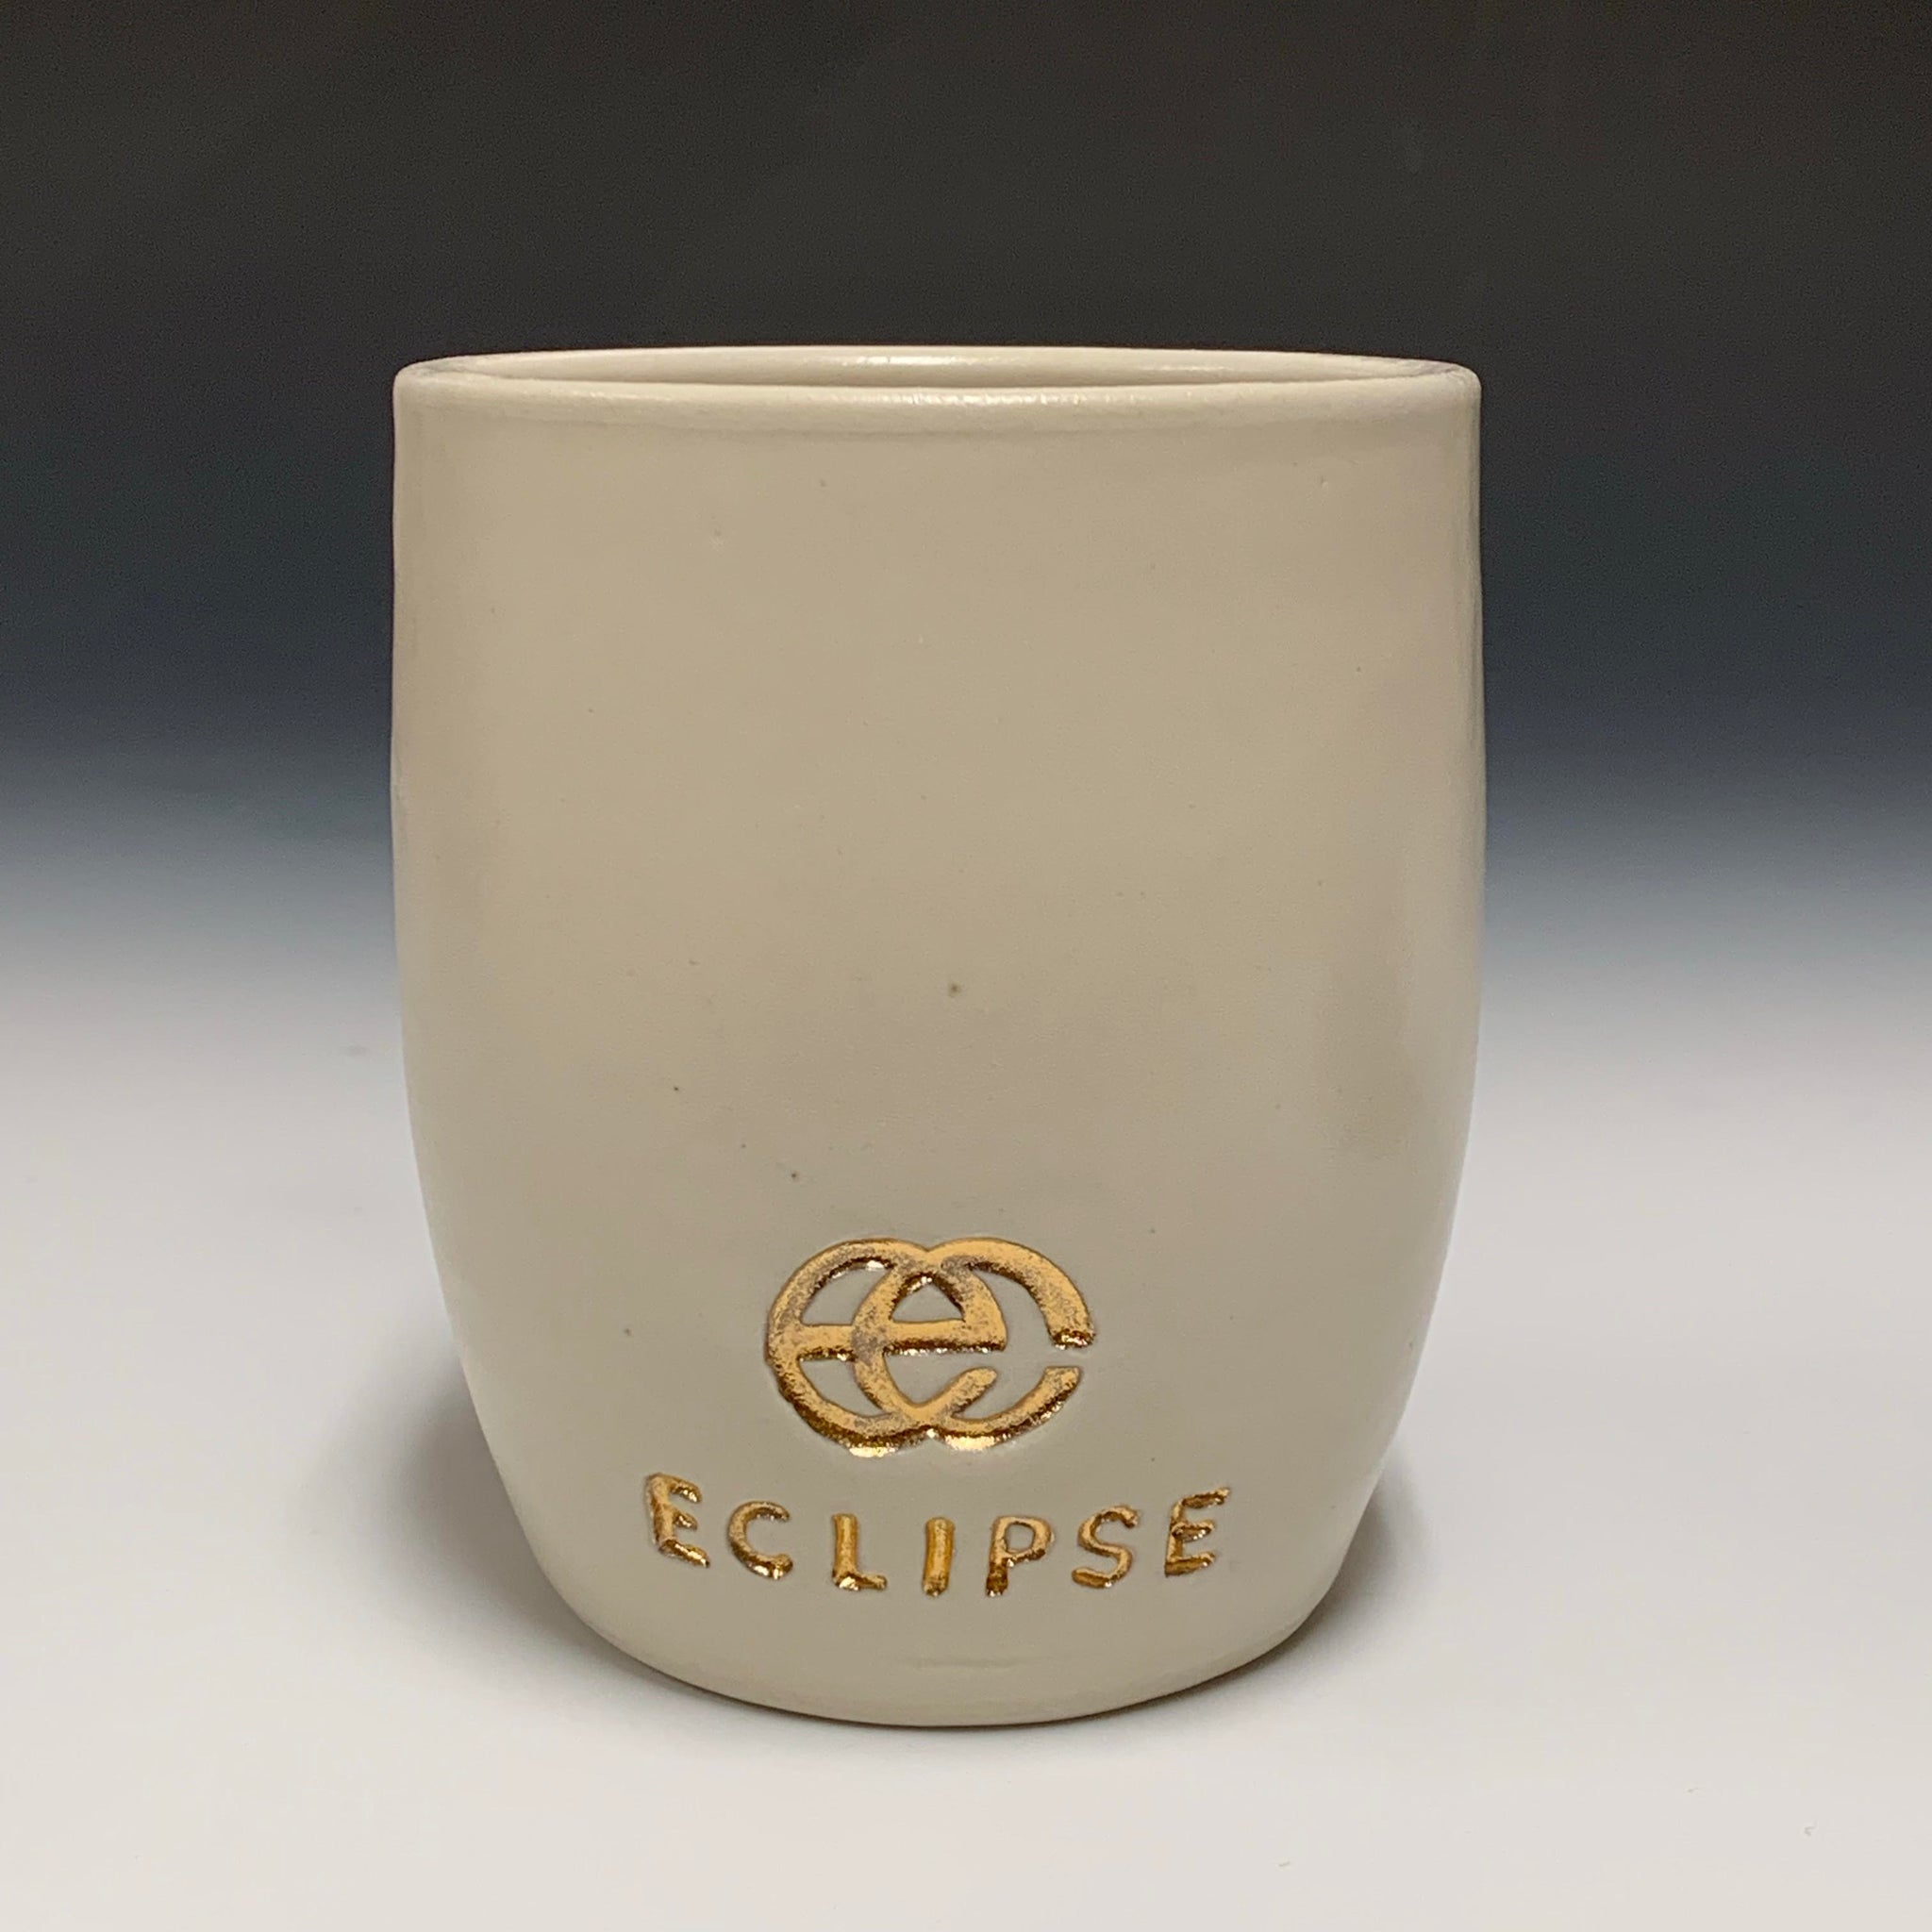 Eclipse Coffee Ceramic Cups